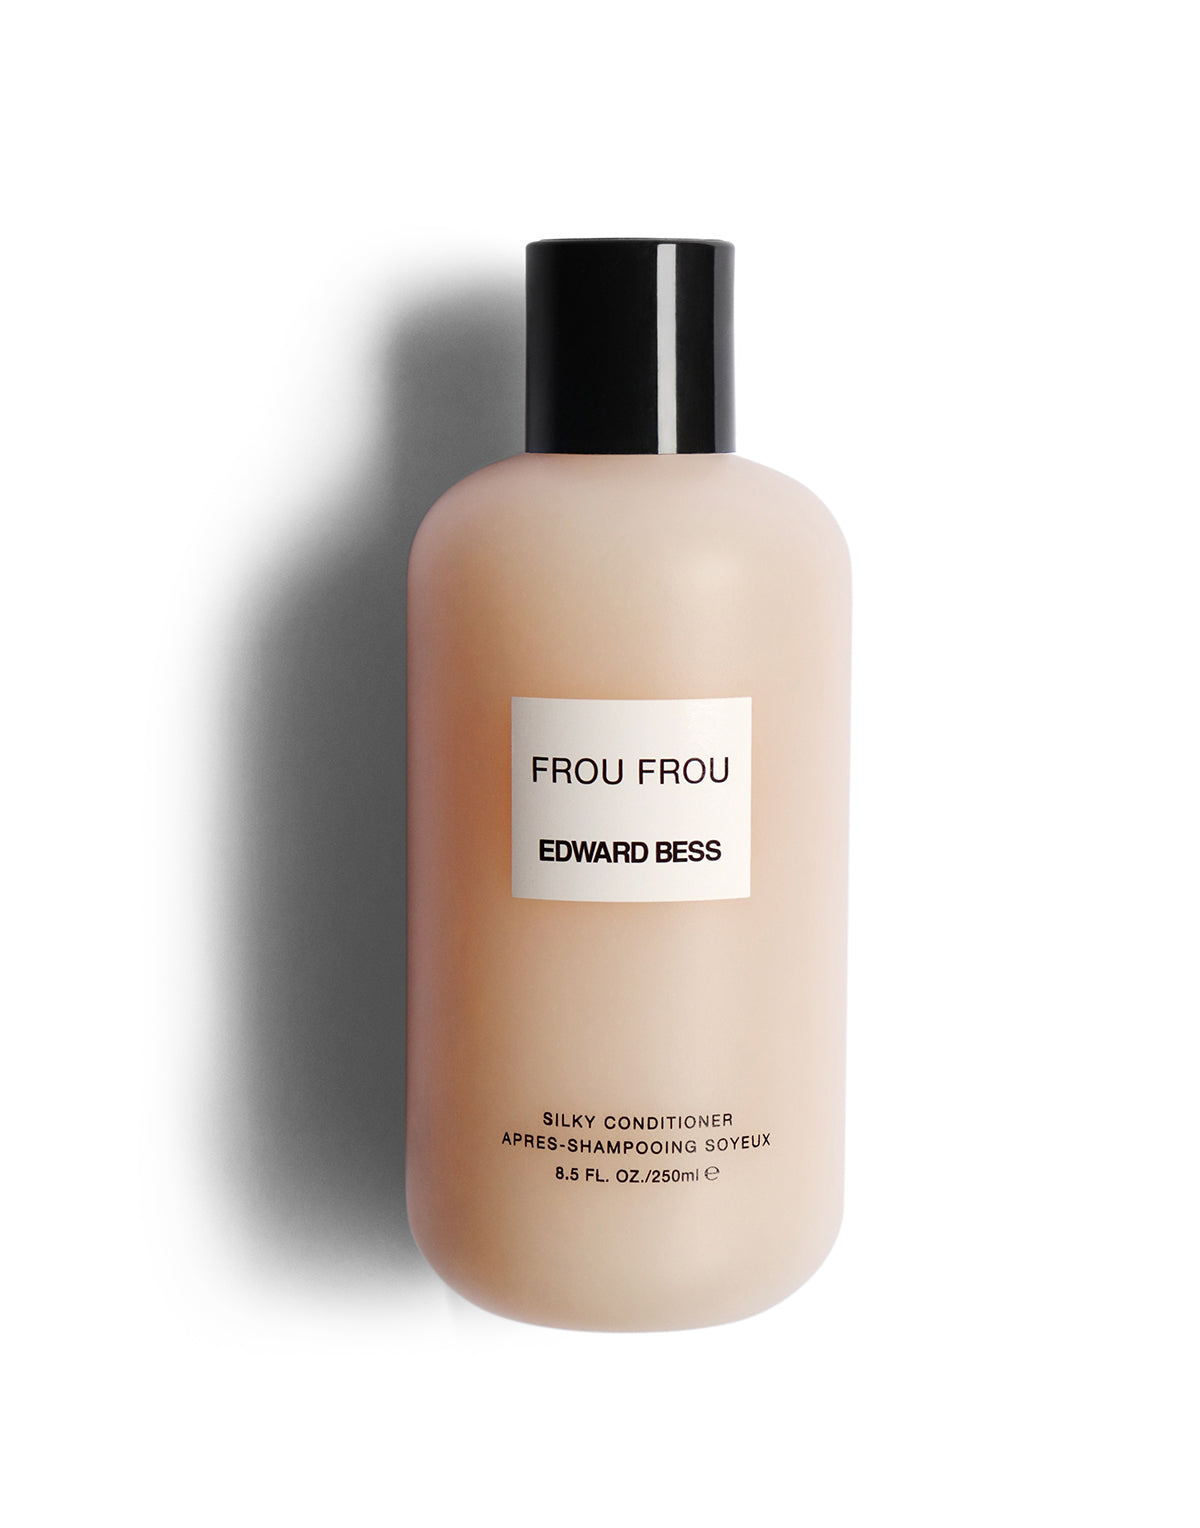 Frou Frou Silky Conditioner